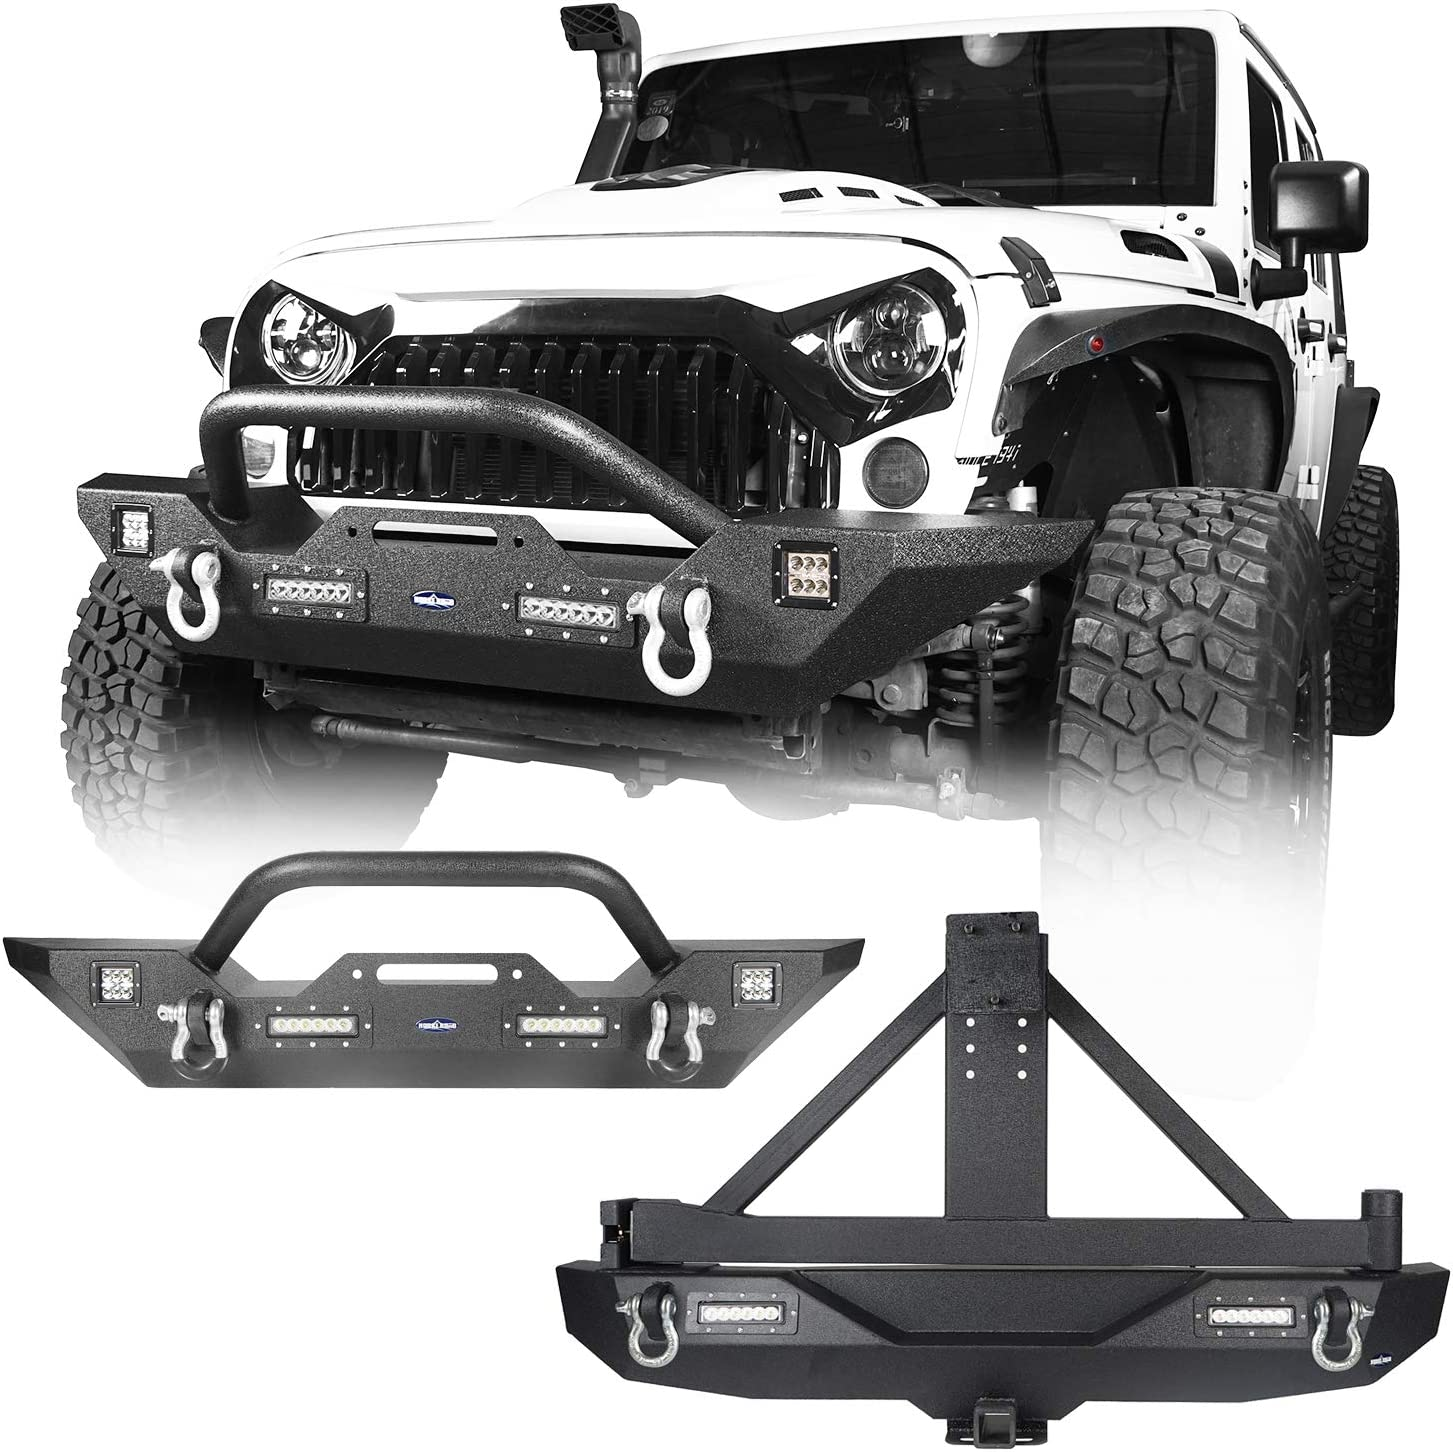 2 Receiver ECOTRIC For 2007-2018 Jeep Wrangler JK Steel Rear Bumper Textured Black w//Lockable Tire Carrier 2Pcs High Powered LED Floodlights